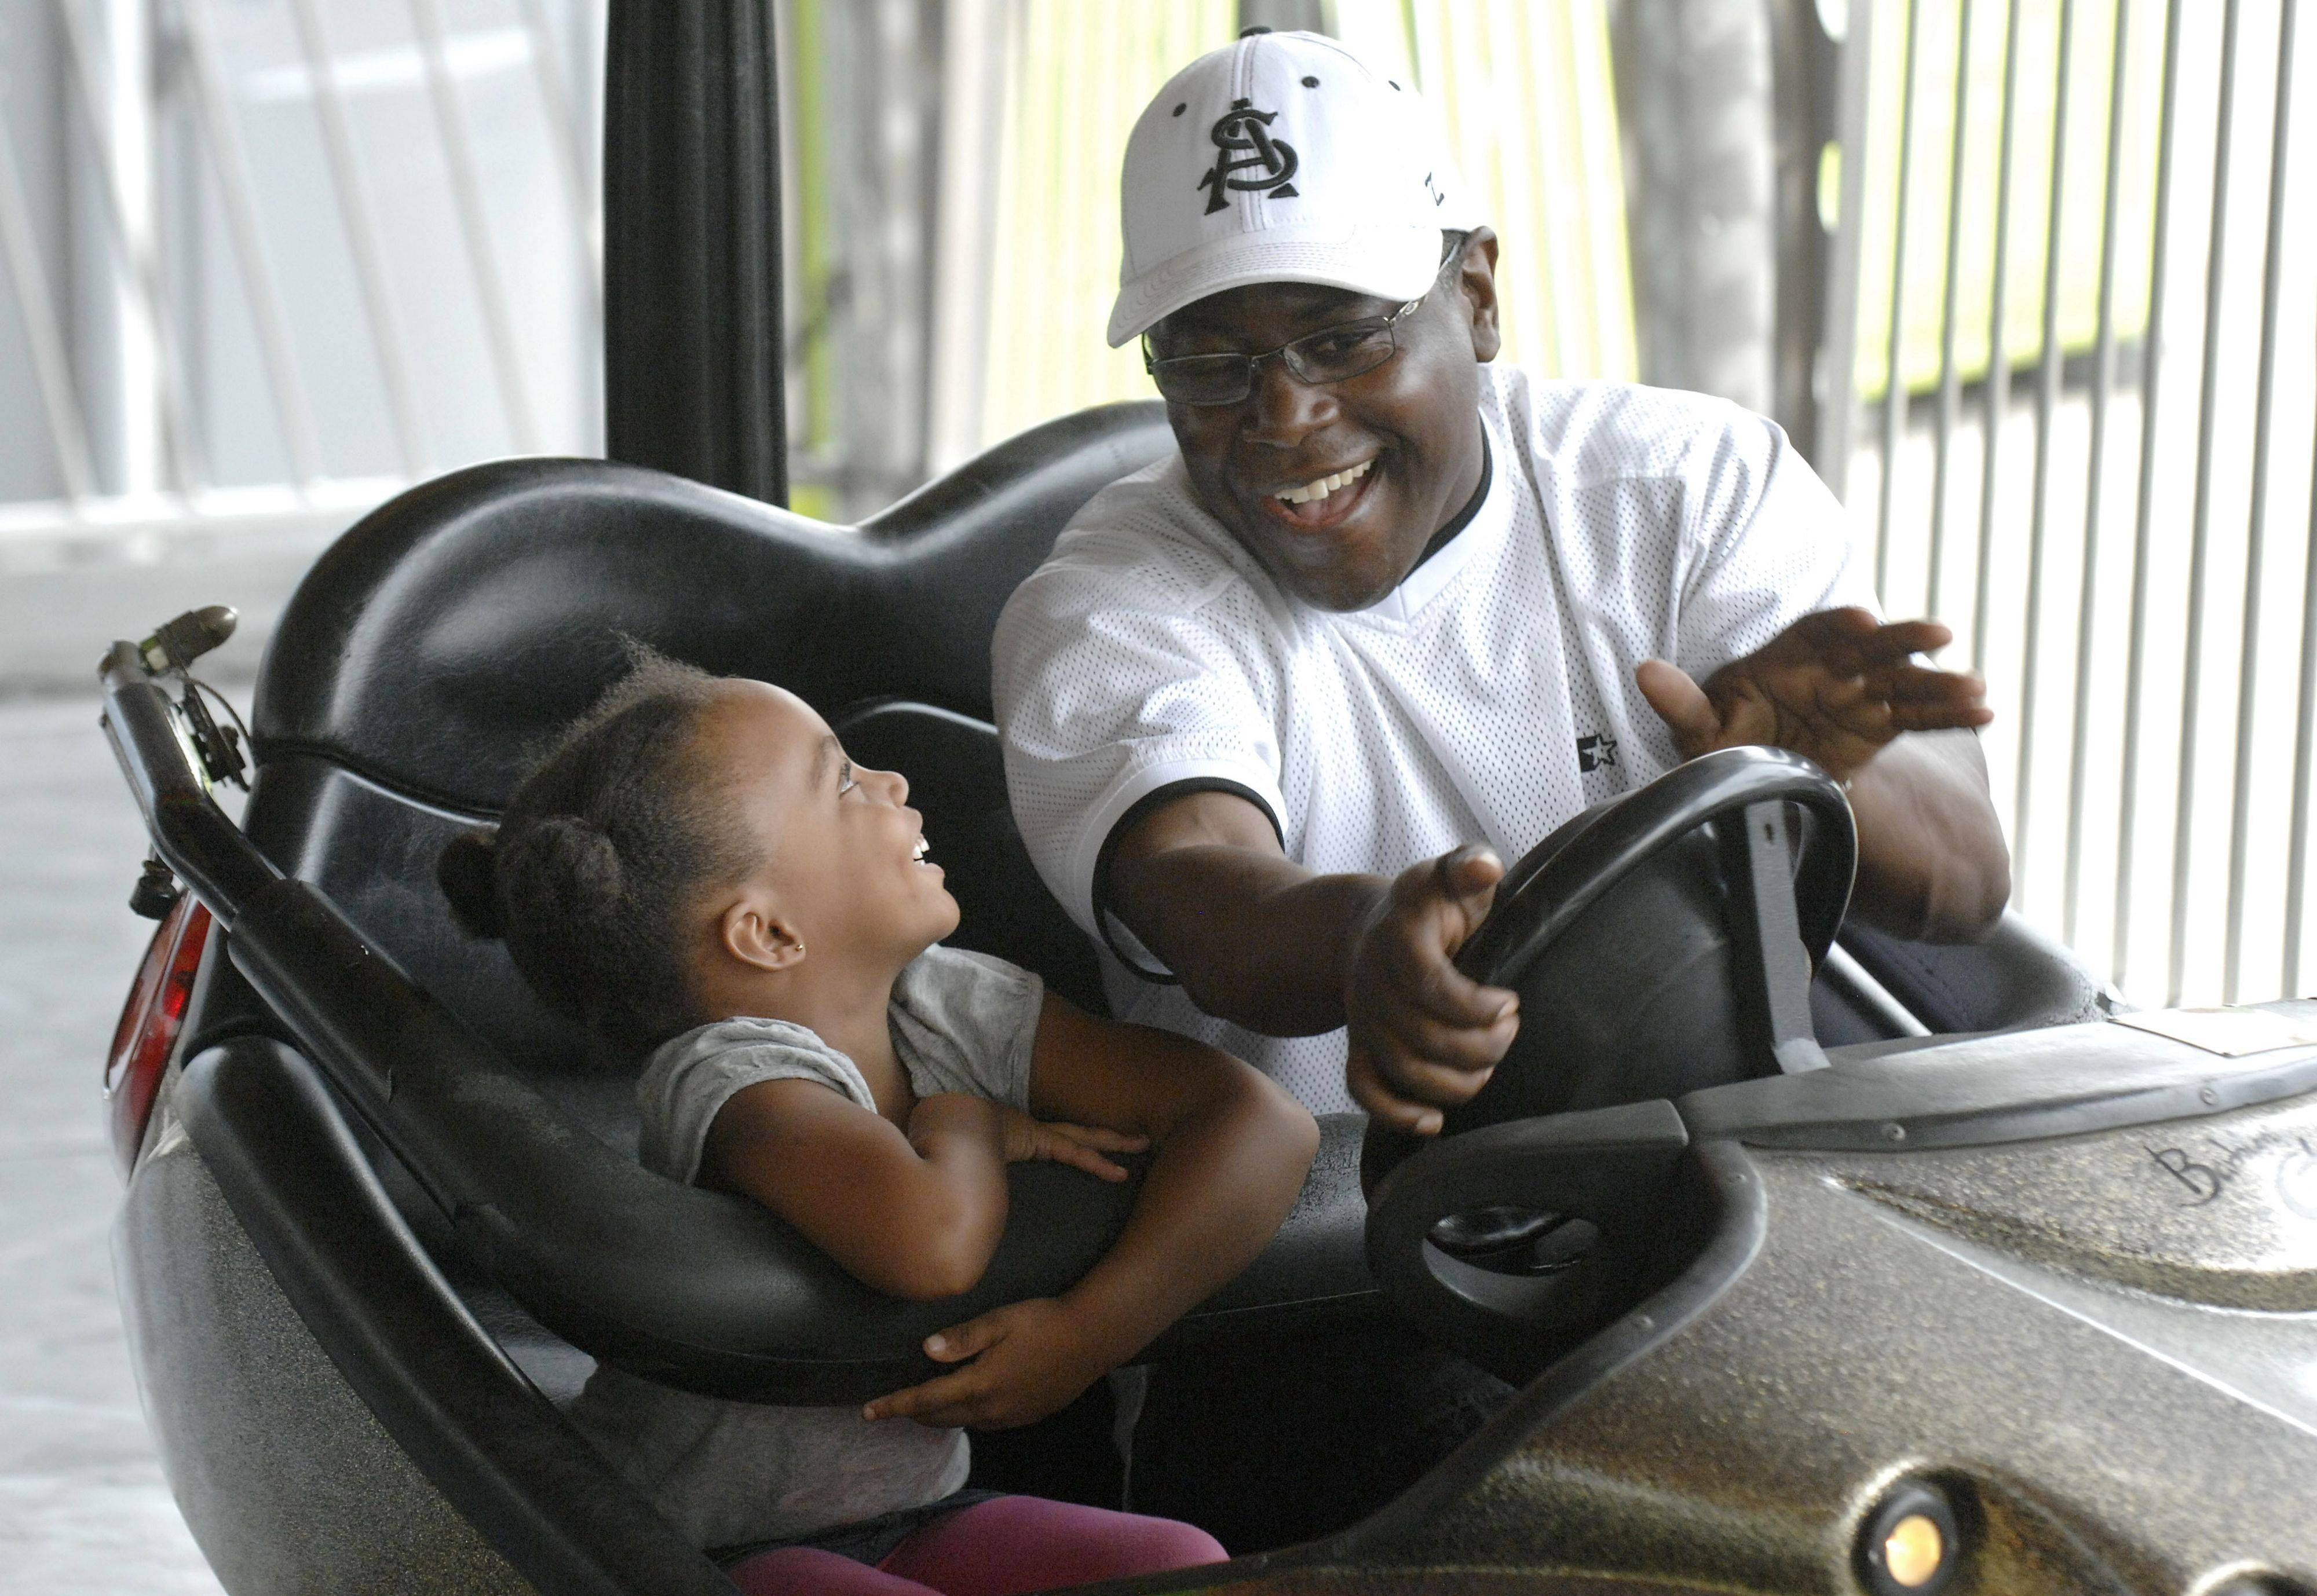 Bobby Moore of St. Charles and his granddaughter, Jordan Cotton, 4, of Berwyn, giggle after their first collision on the bumper cars at the carnival running over Labor Day weekend at Route 38 and Randall Rd in St. Charles. The carnival benefits the Literacy Volunteers Fox Valley and Fox Valley Troop Support.